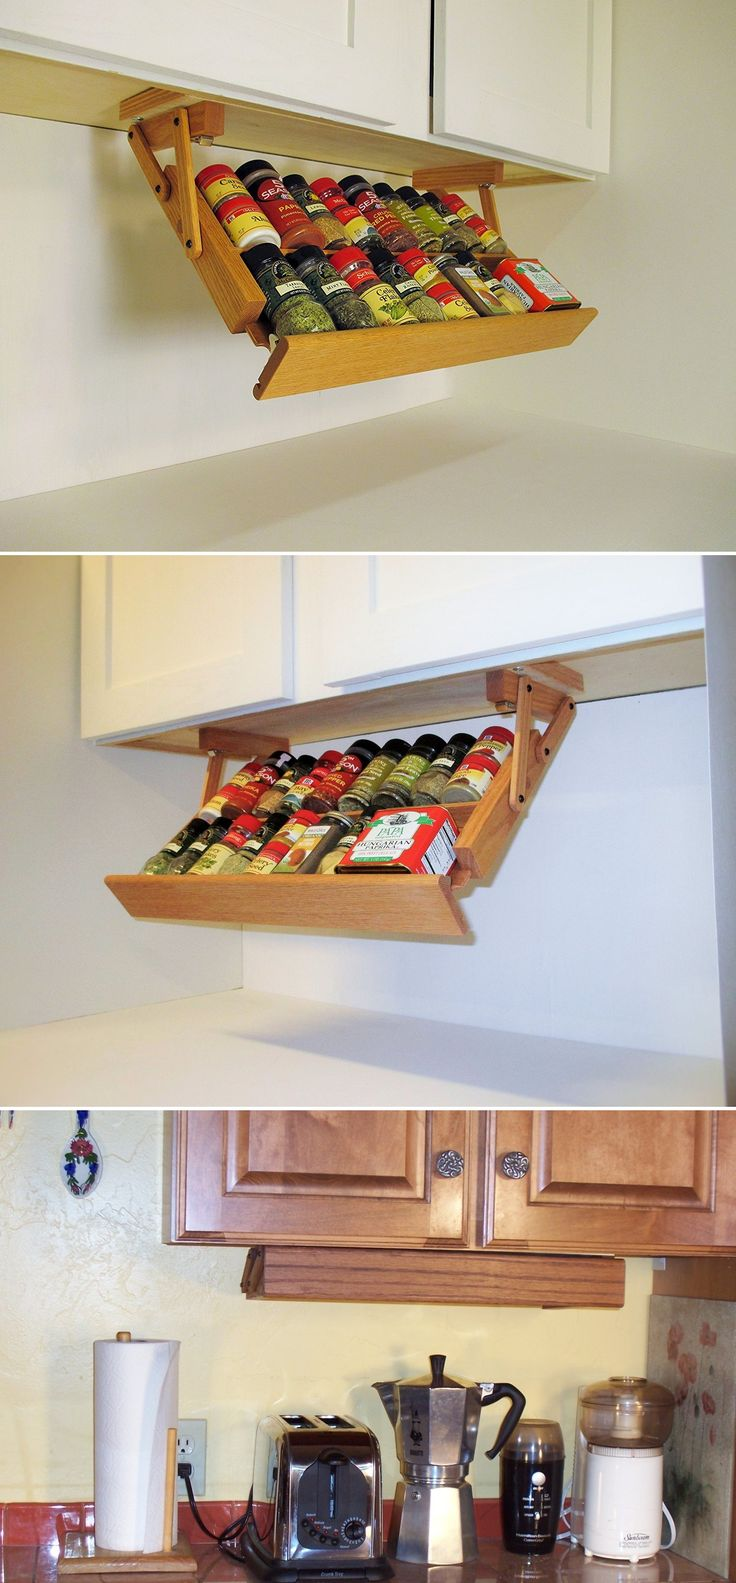 Best 25+ Cabinet spice rack ideas on Pinterest | Spice racks for ...